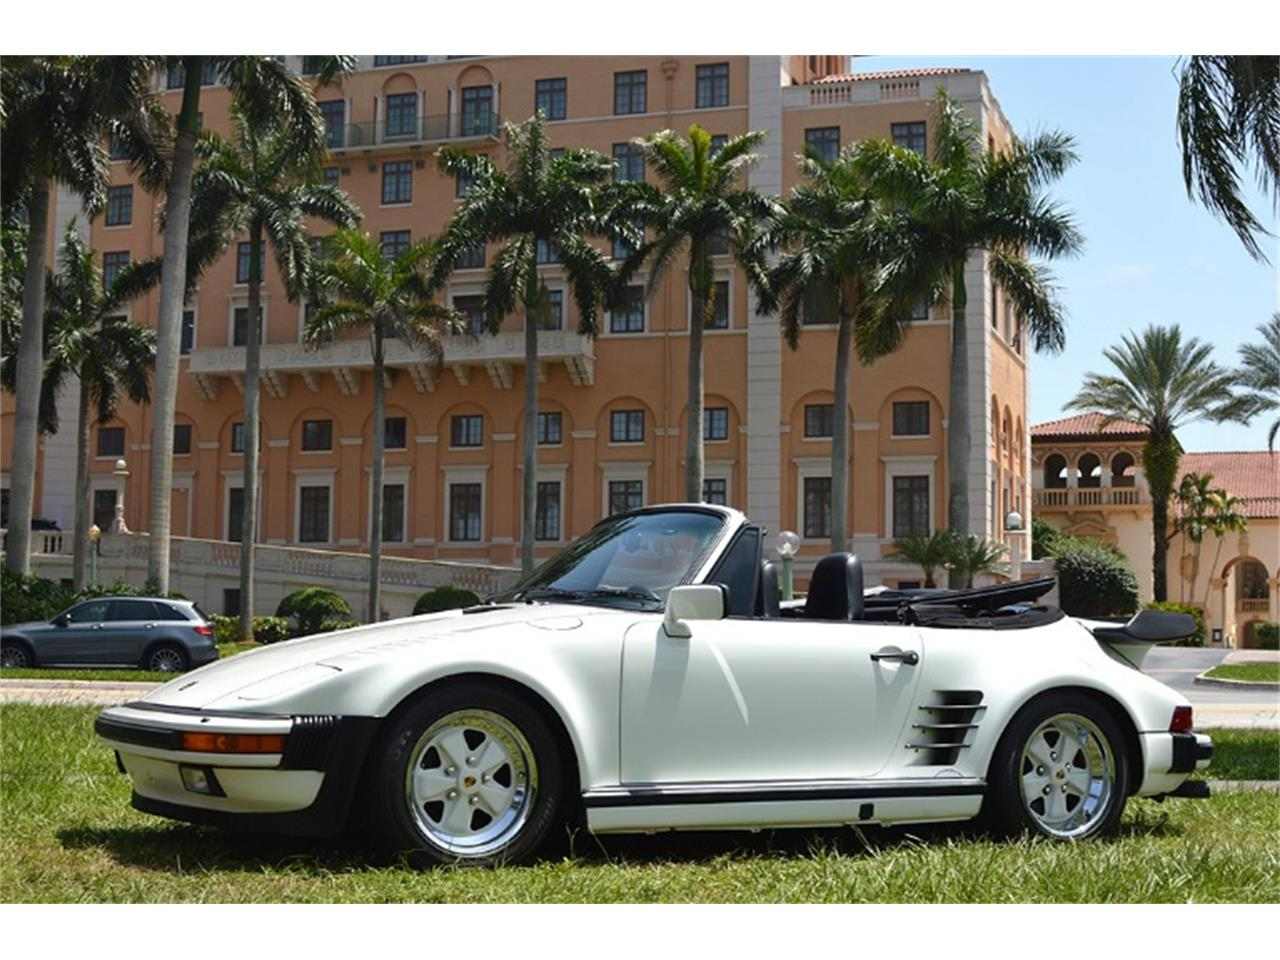 Large Picture of '88 911 located in Miami Florida - $139,999.00 - QKFZ